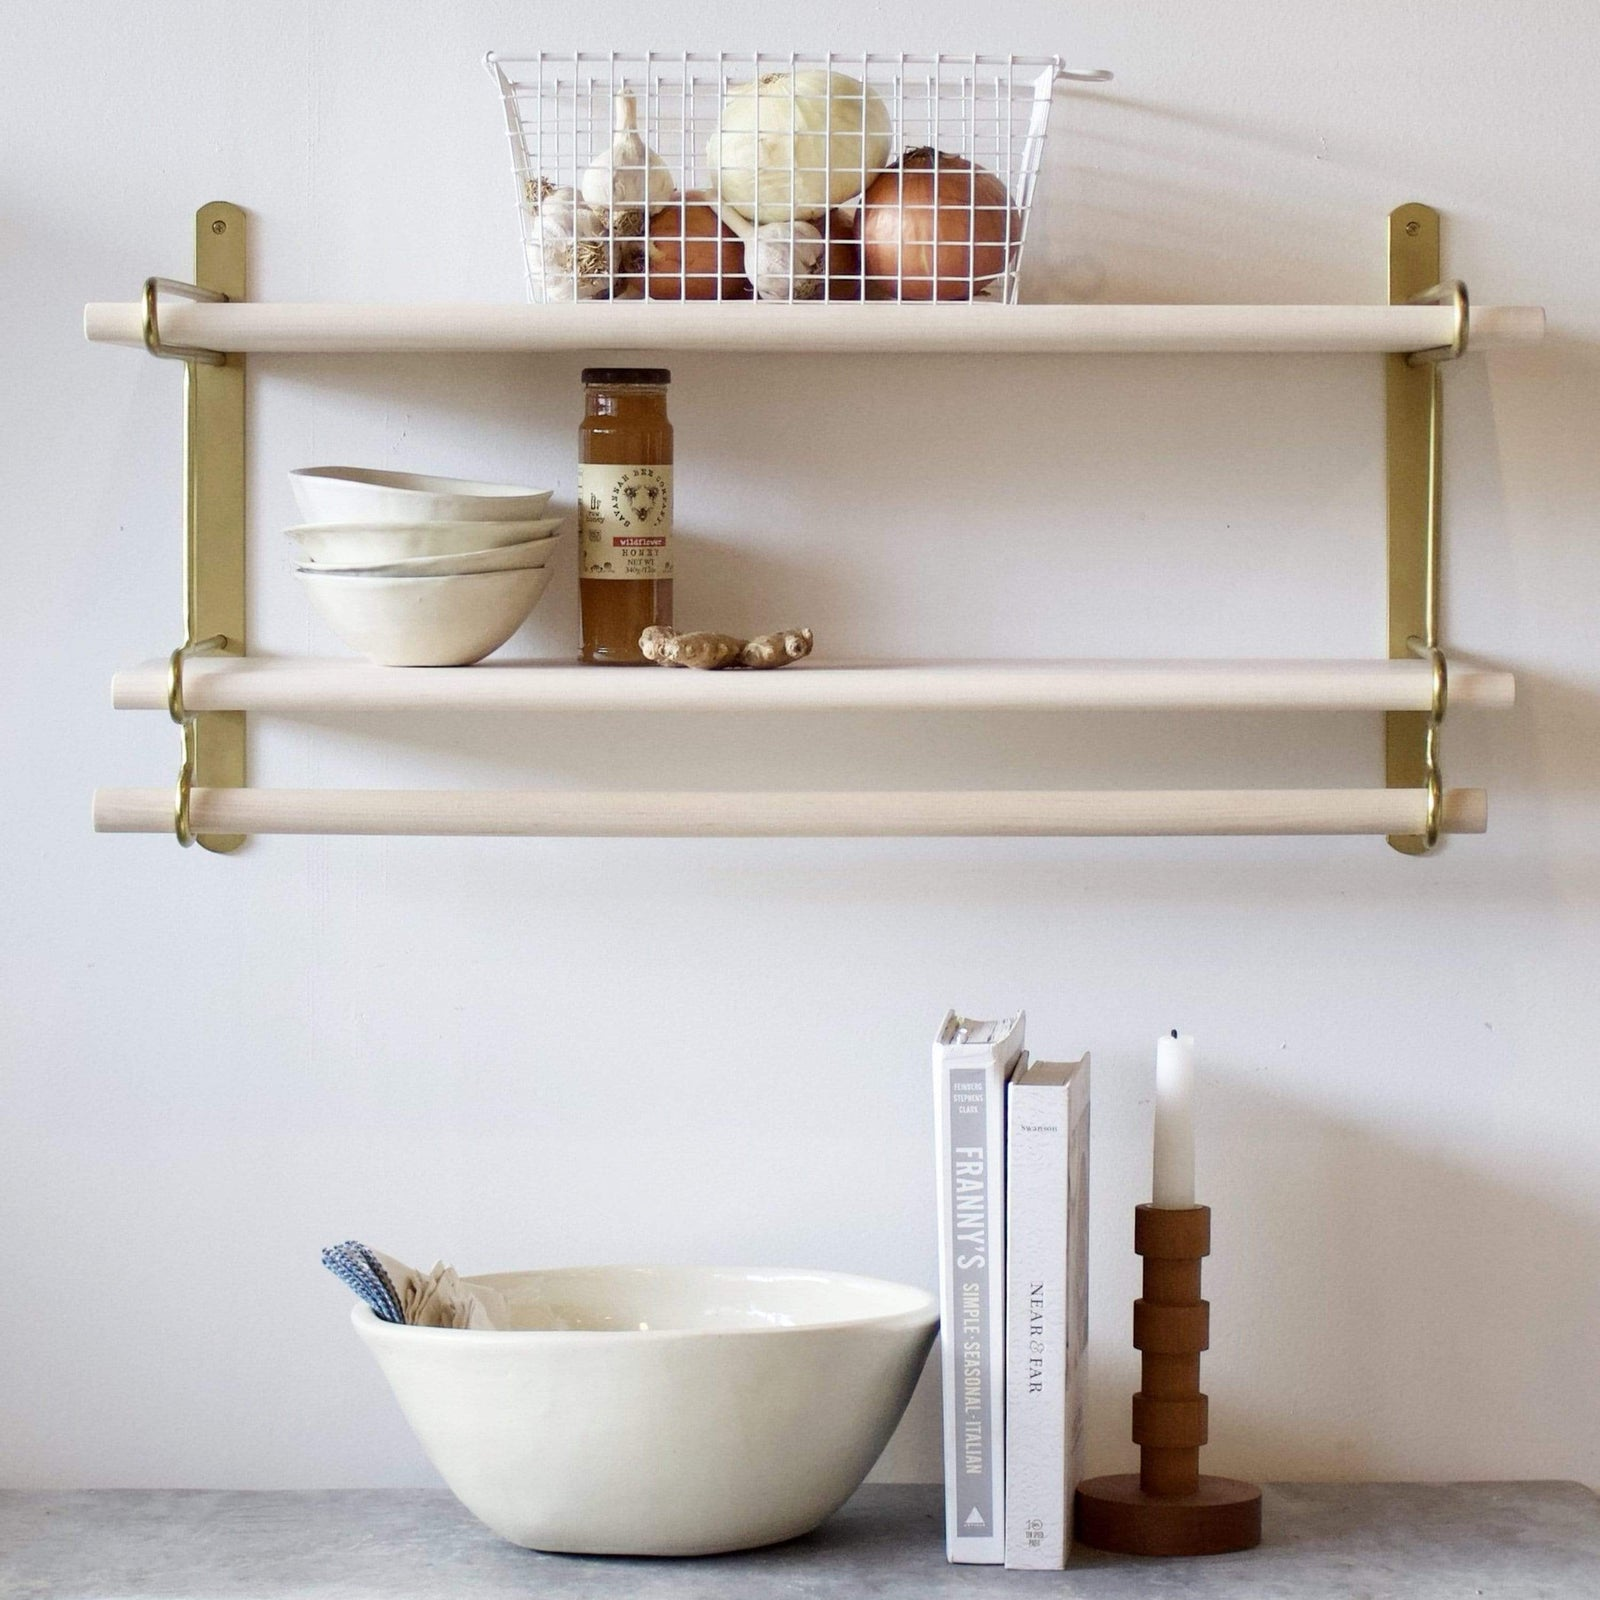 Lostine Wall Decor Brass Logan Wall Rack, Double